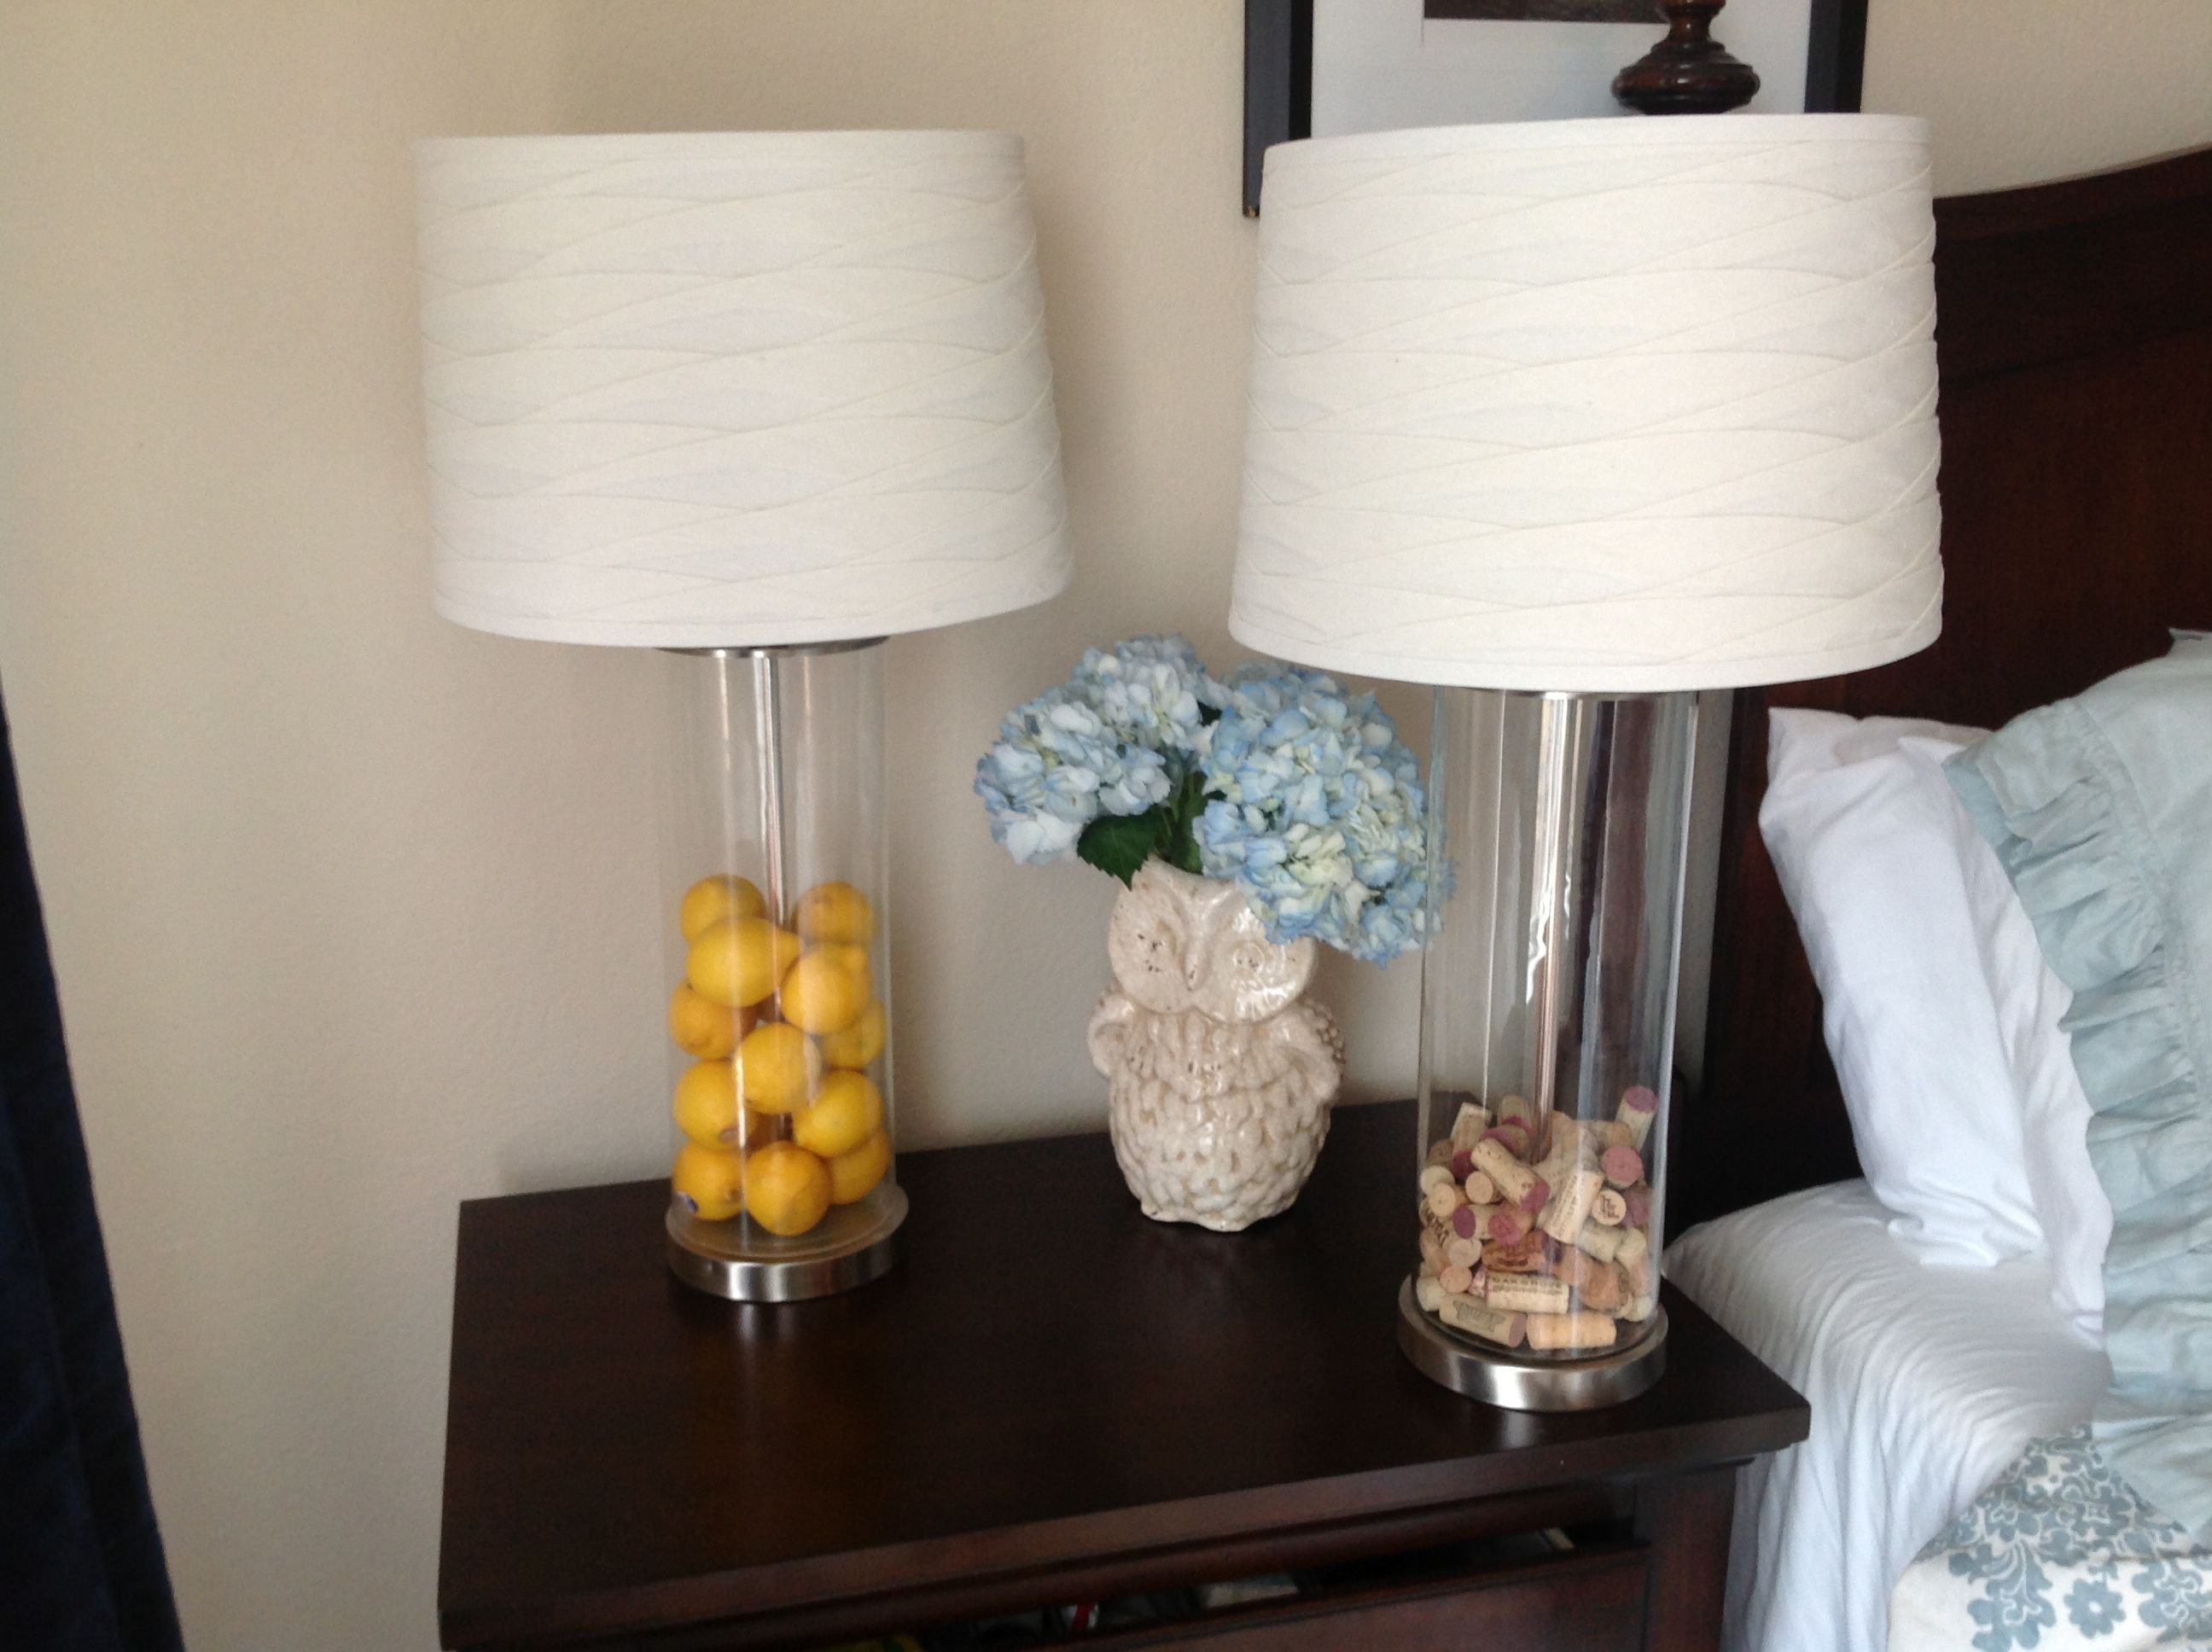 his and her fillable lamps from target